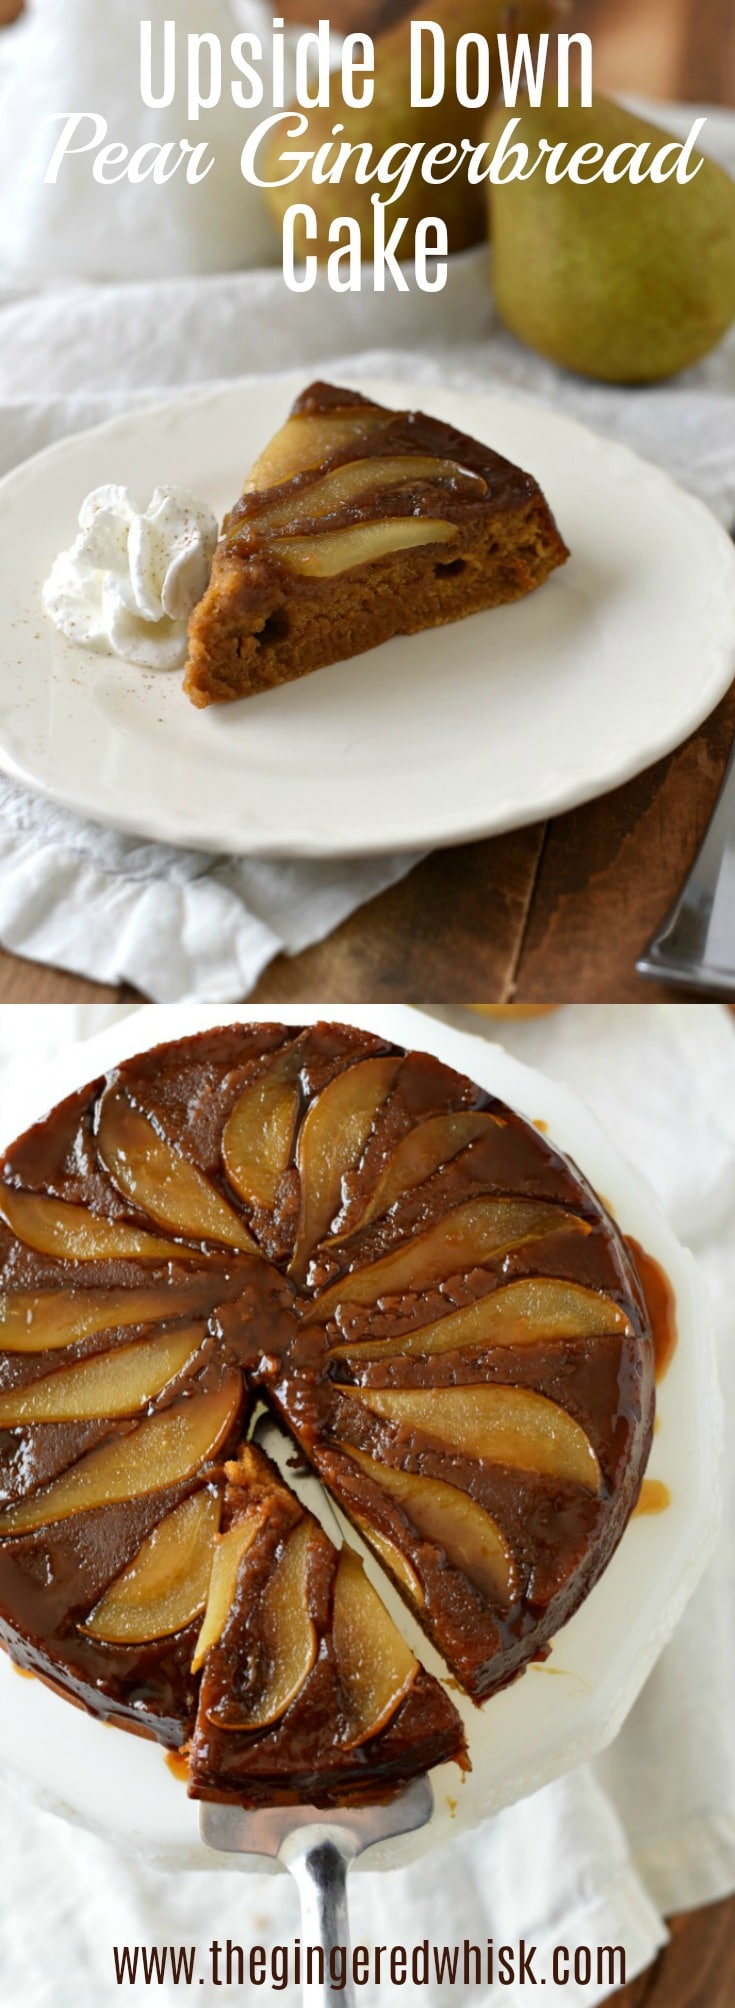 This almost effortless Upside Down Pear Gingerbread Cake is tenderly spiced with fall flavors, drizzled with an easy salted caramel sauce and studded with perfectly cooked pears. It is the perfect cake to serve to guests (or have for breakfast) when you need a beautiful yet easy fall dessert.